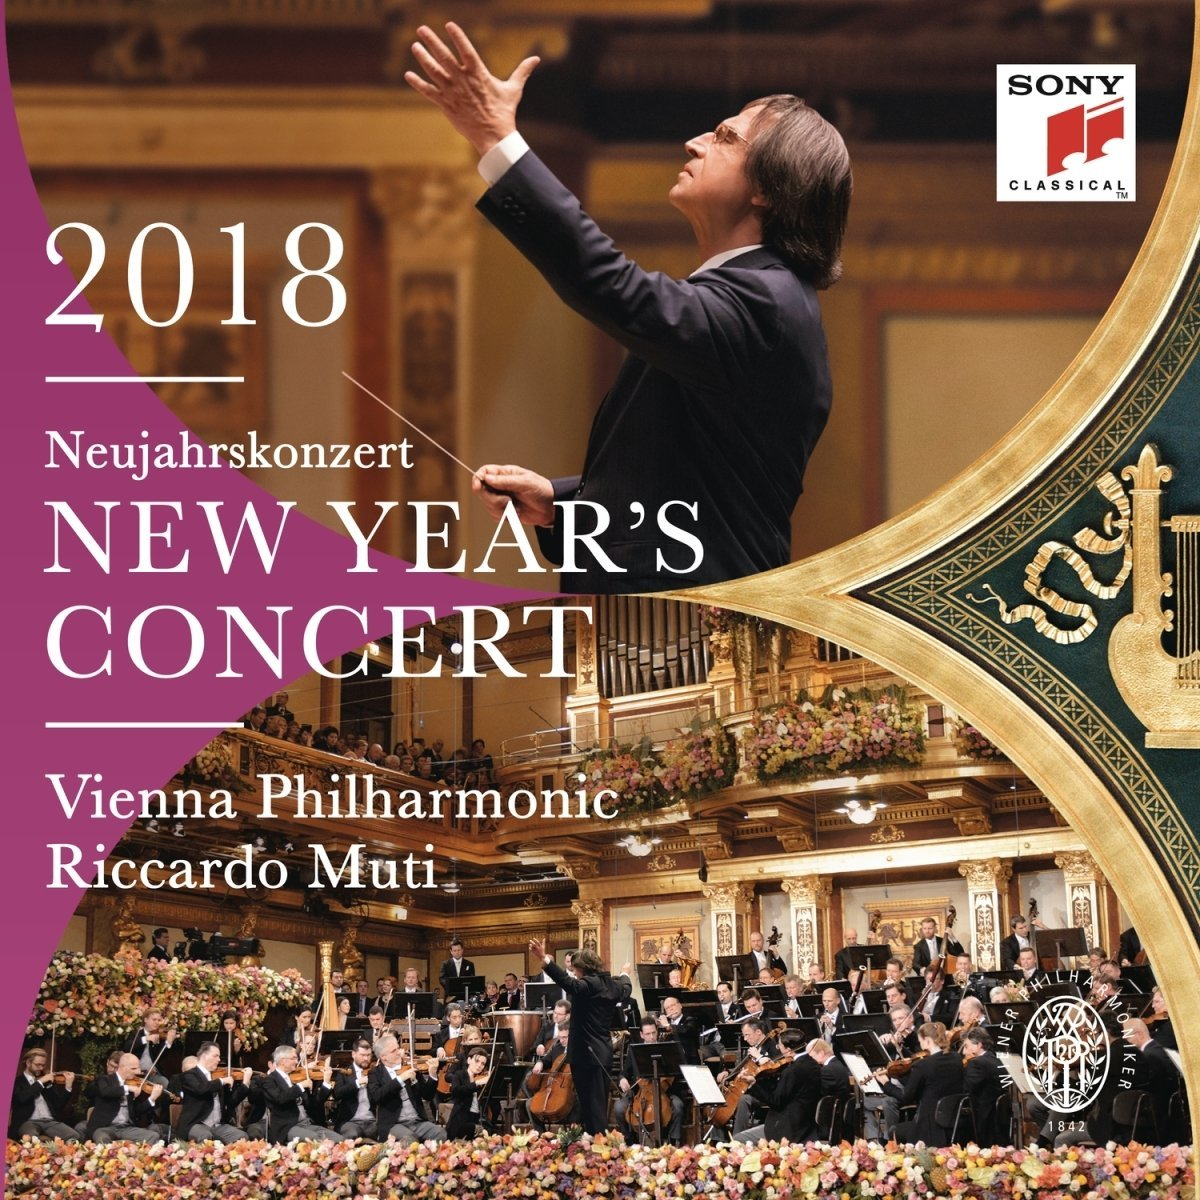 New Year's Day Concert 2018 - Riccardo Muti conduc